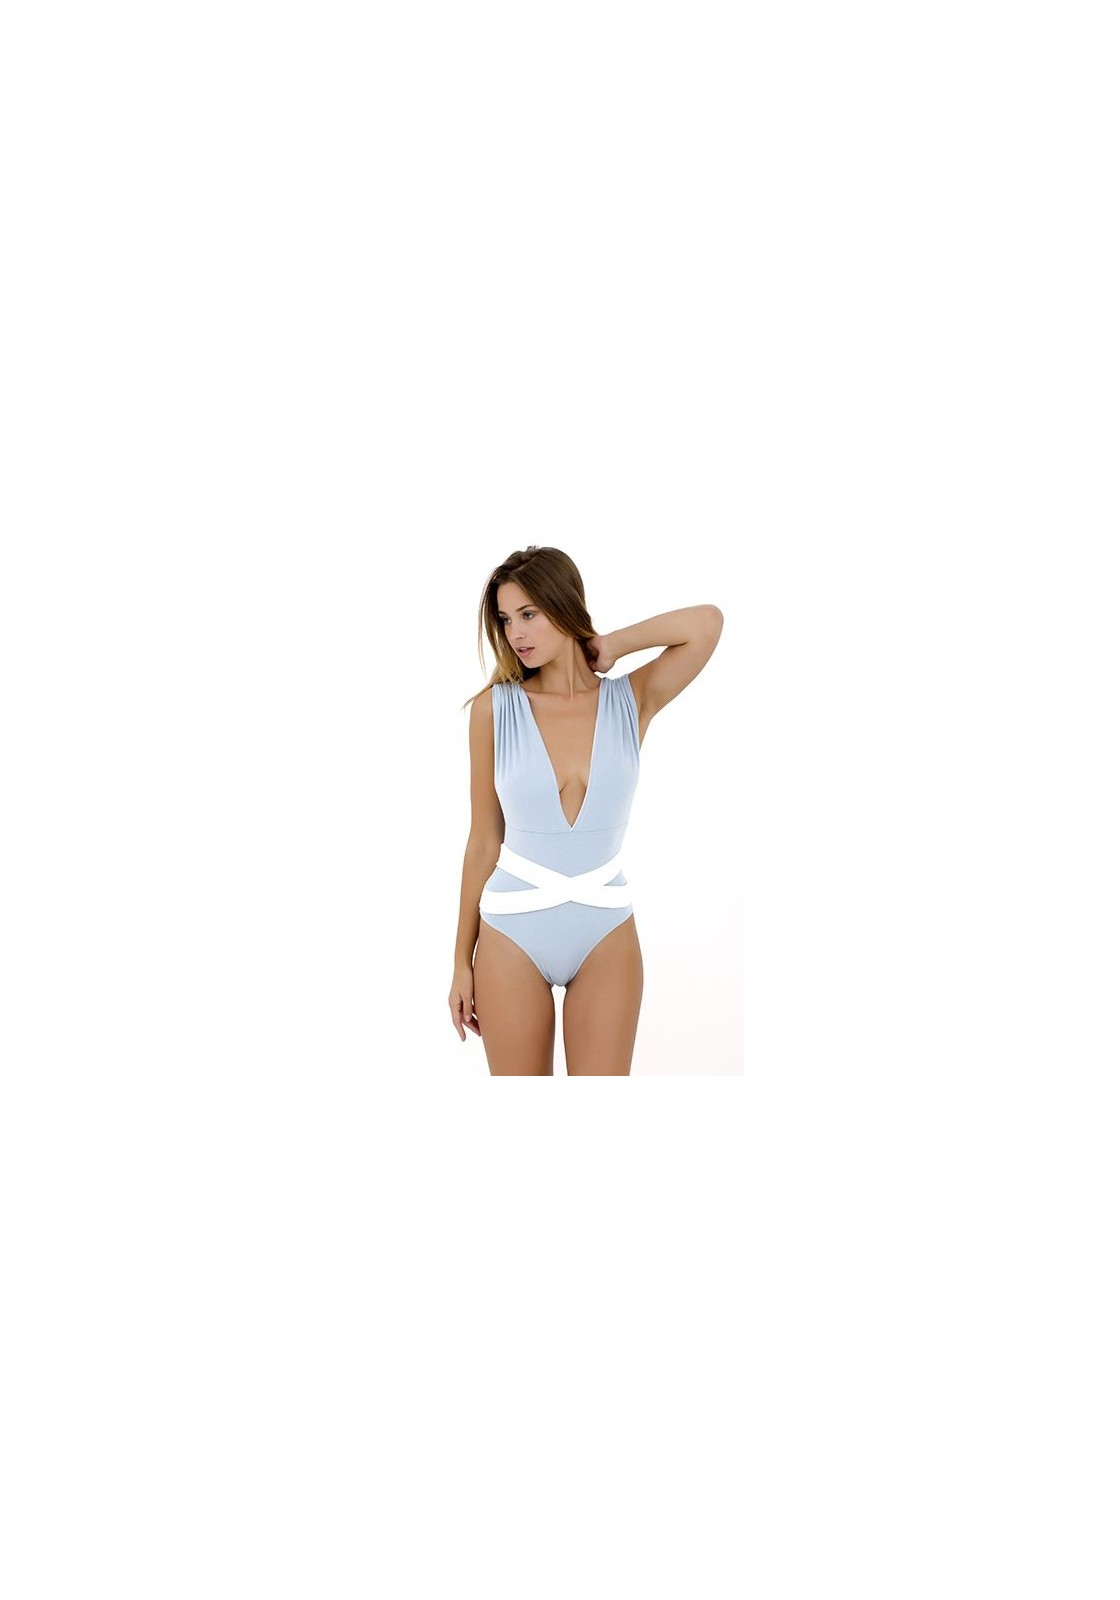 5e7518dc85f4a One-piece swimsuit in blue and white - Elisa